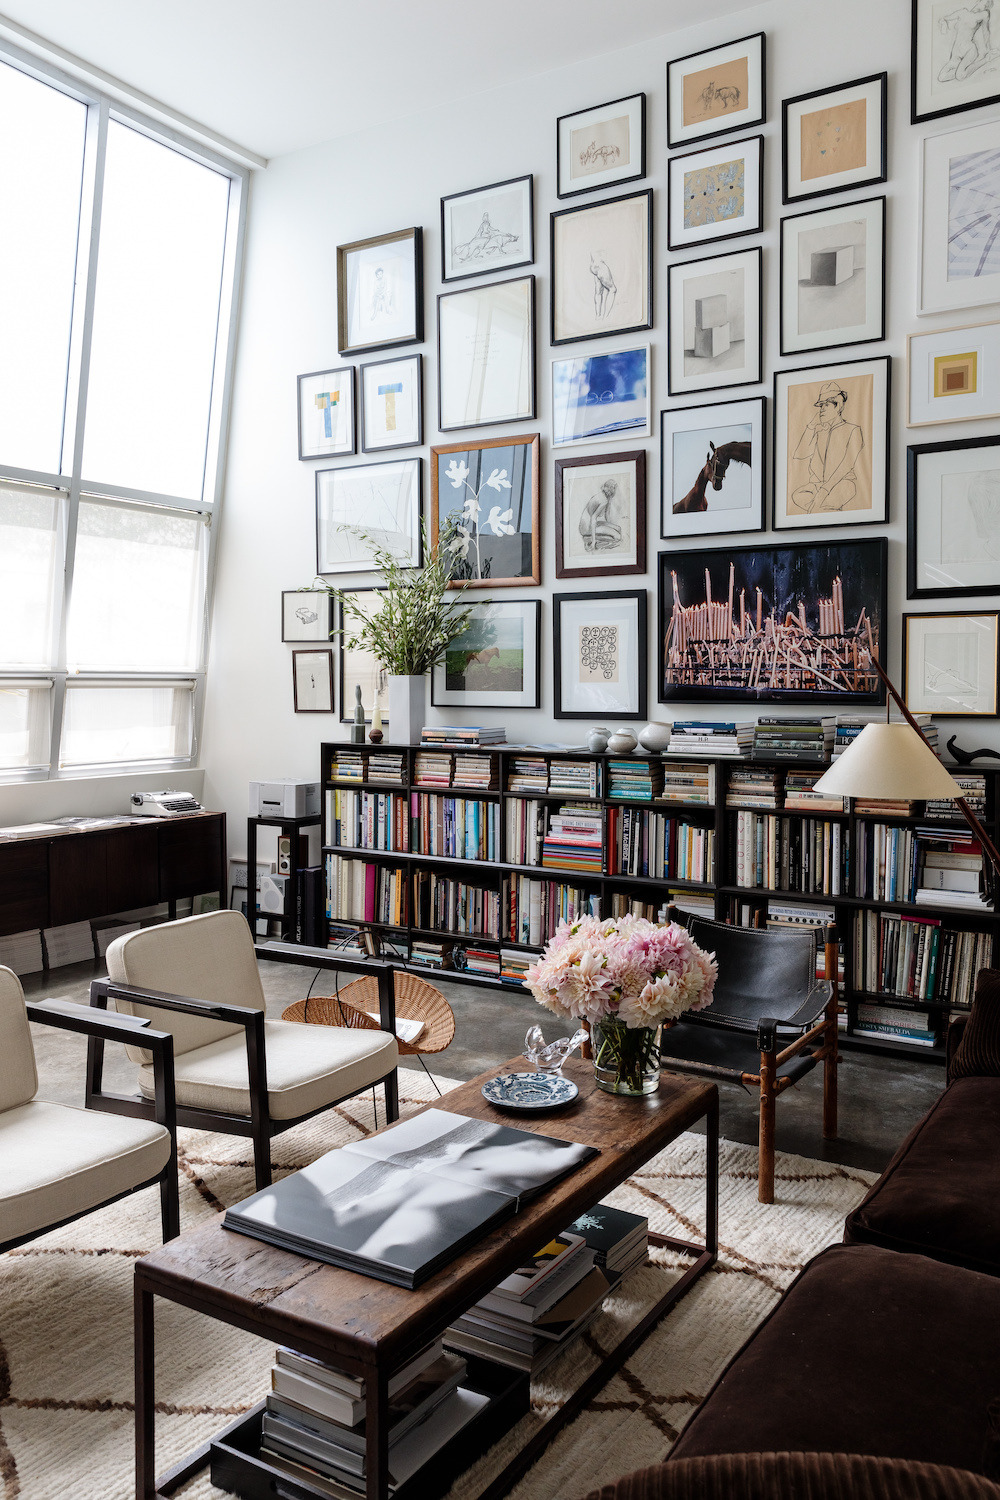 Living Room With Books: A Dreamy Living Room Filled With Books & Art